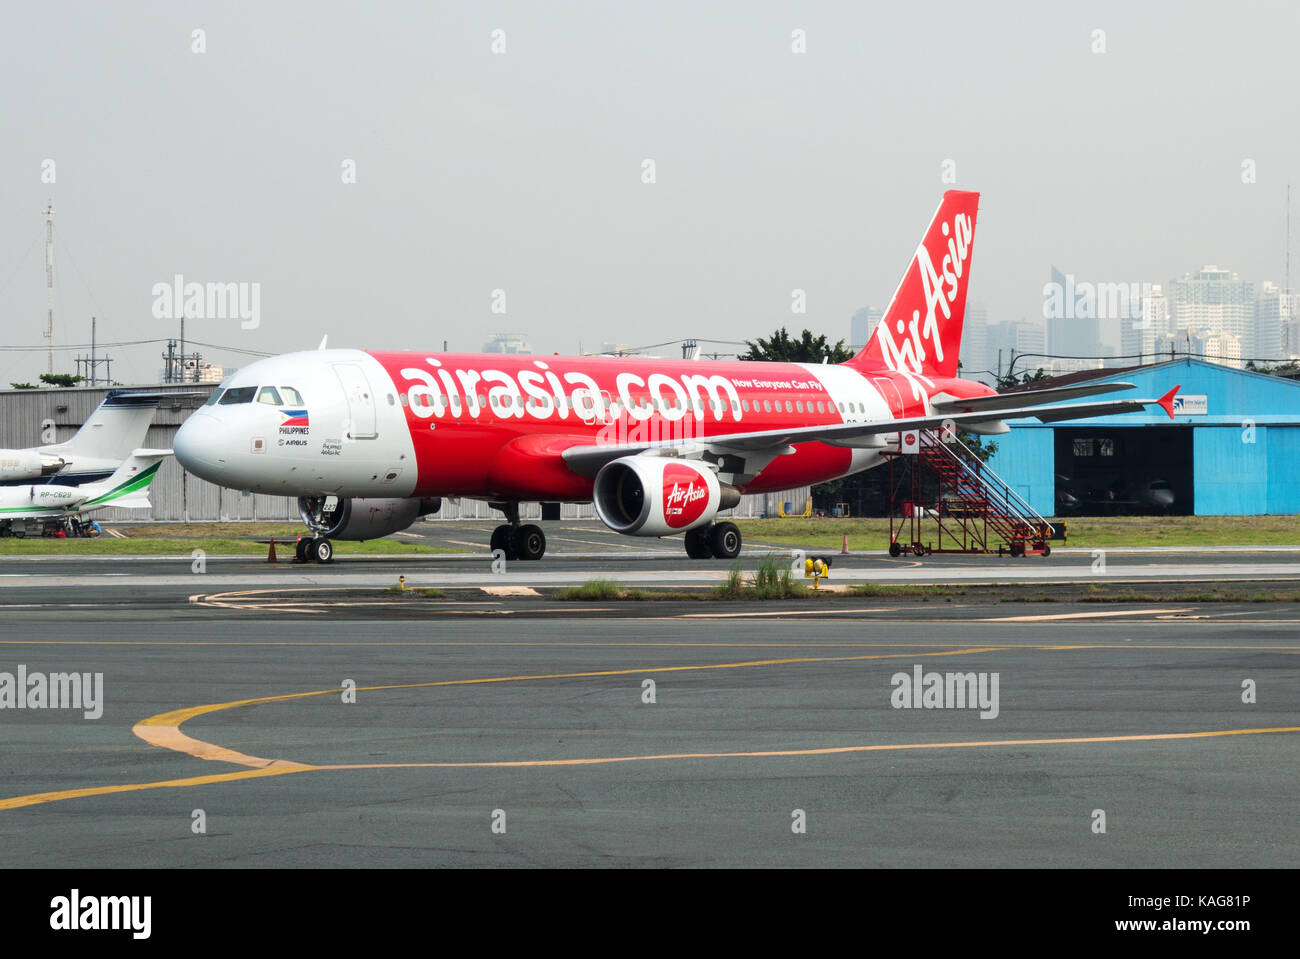 An AirAsia plane on the ground at Ninoy Aquino International Airport, Manila, Philippines, Asia - Stock Image